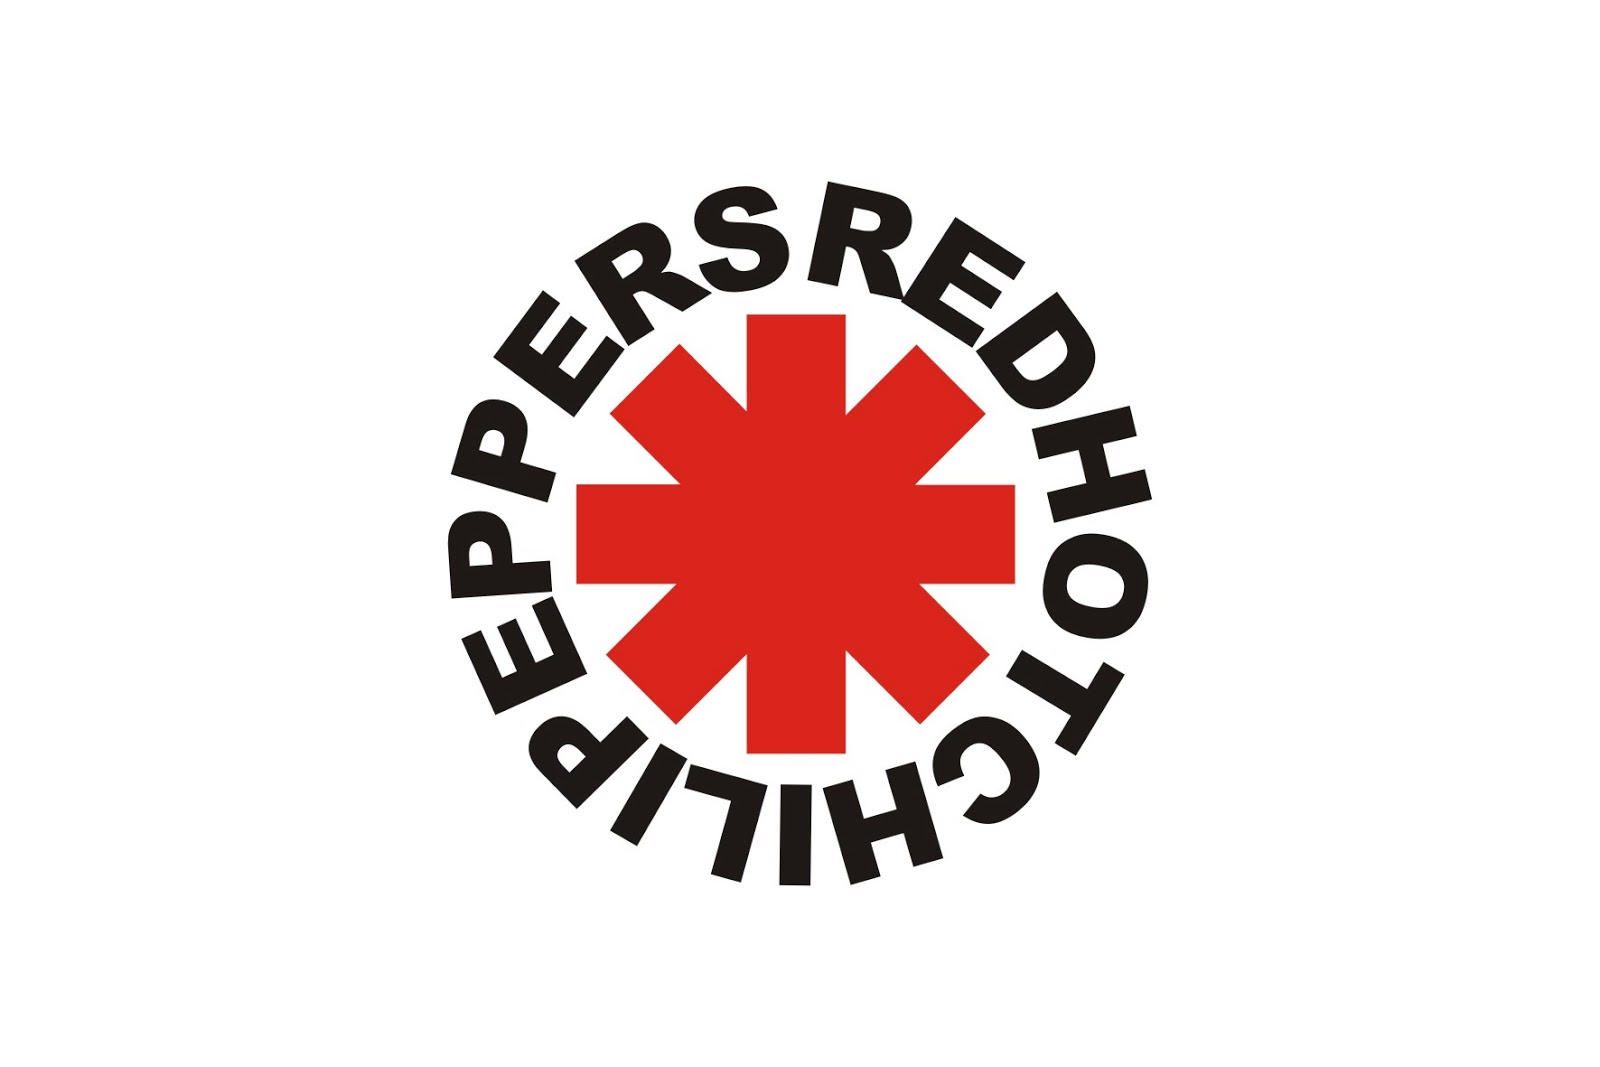 Red hot chili peppers logo logo share red hot chili peppers logo biocorpaavc